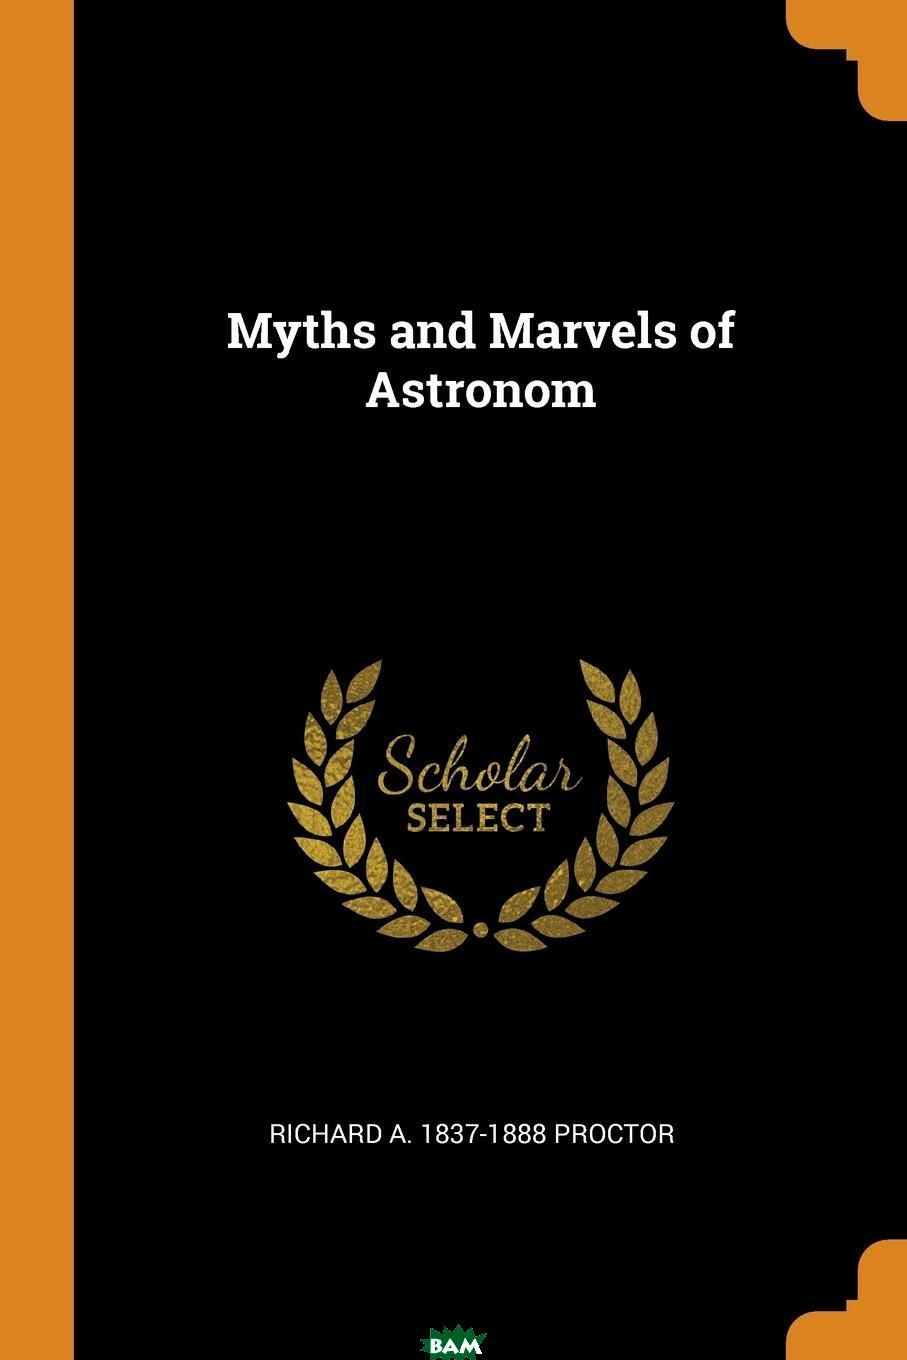 Myths and Marvels of Astronom